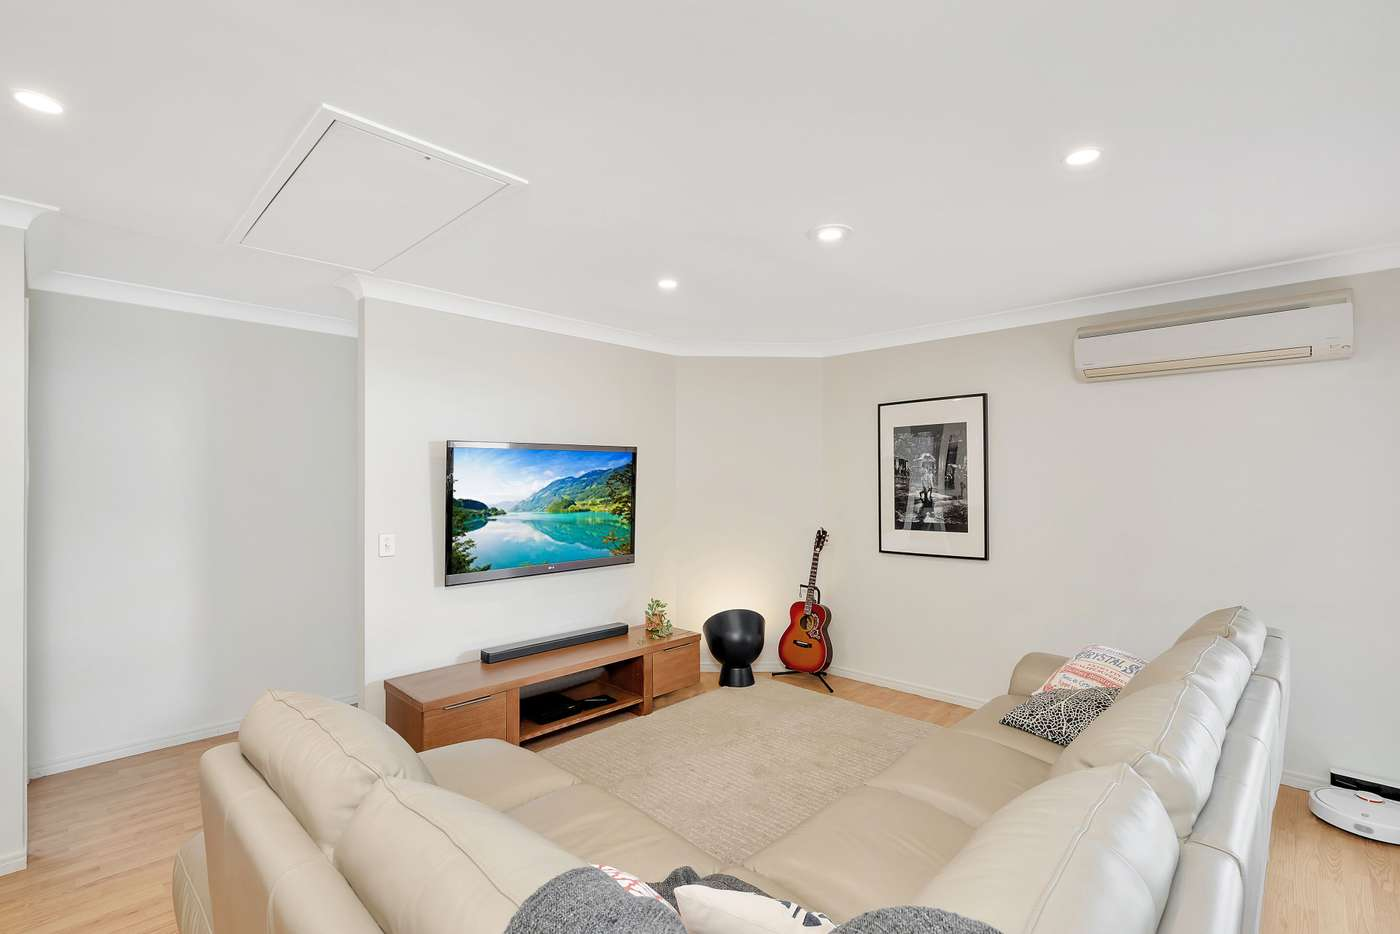 Seventh view of Homely house listing, 1 Ardath Close, Parkwood QLD 4214